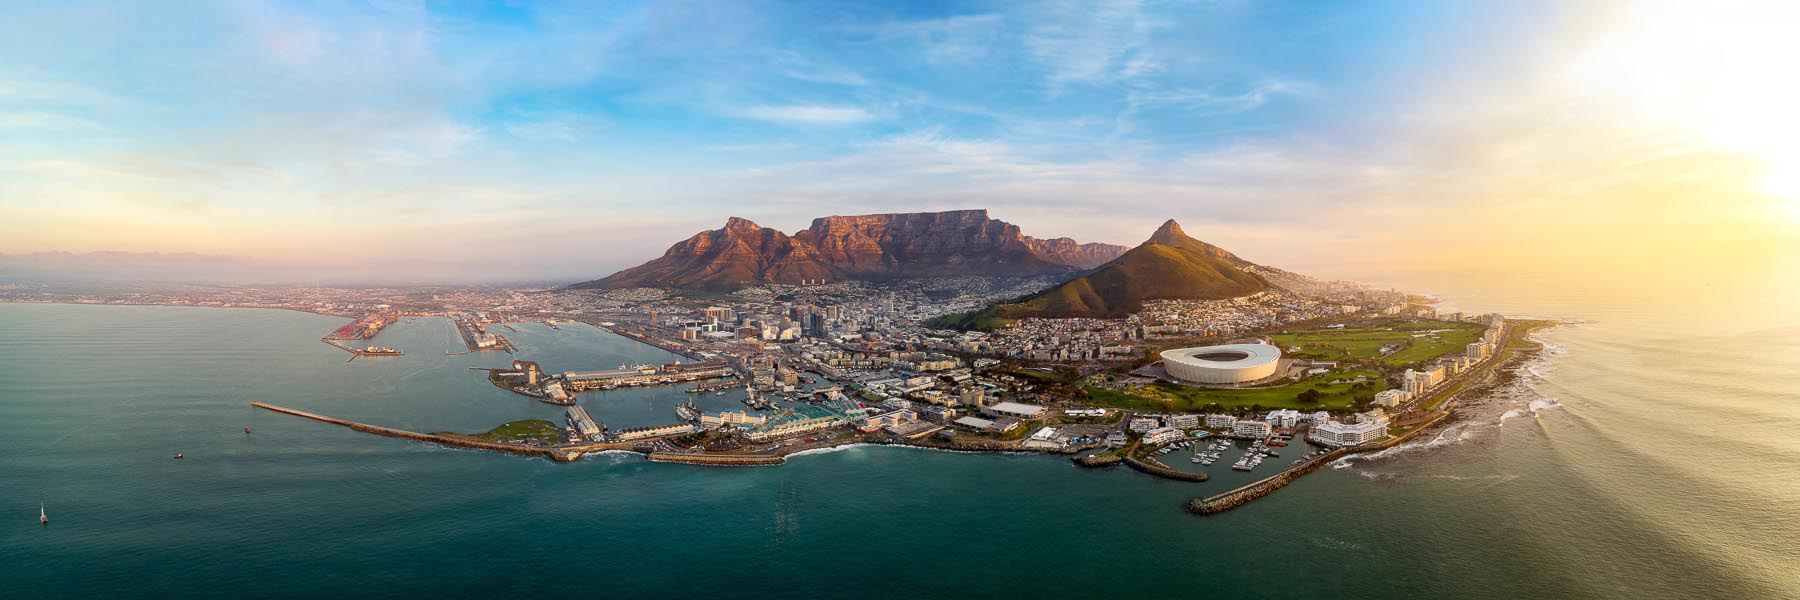 10 must visit places in South Africa